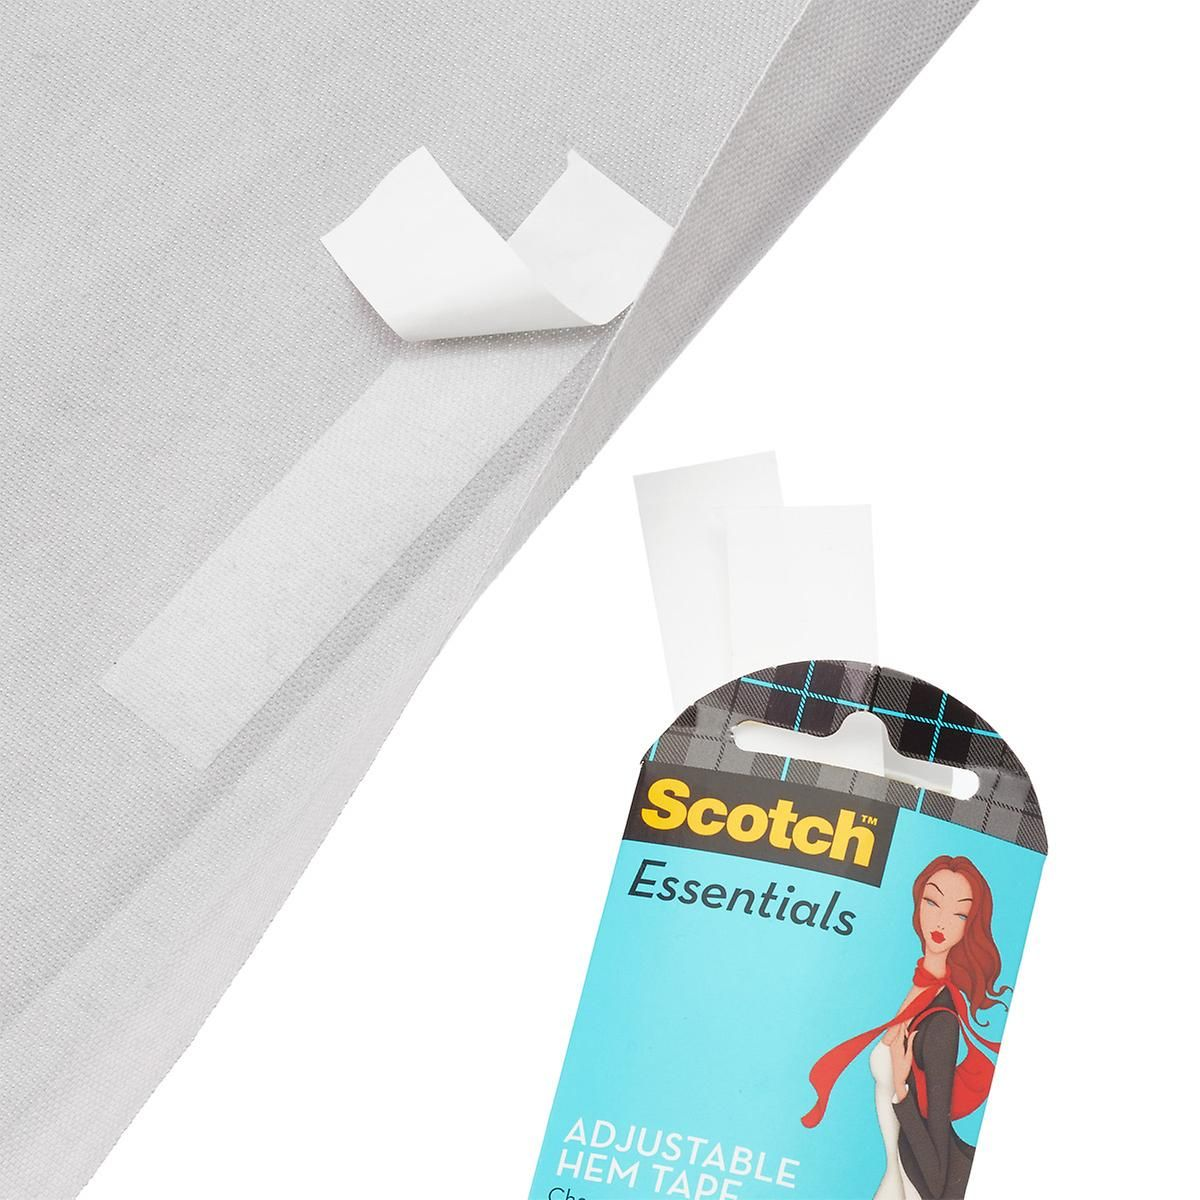 Adjustable Hem Tape by 3M | The Container Store